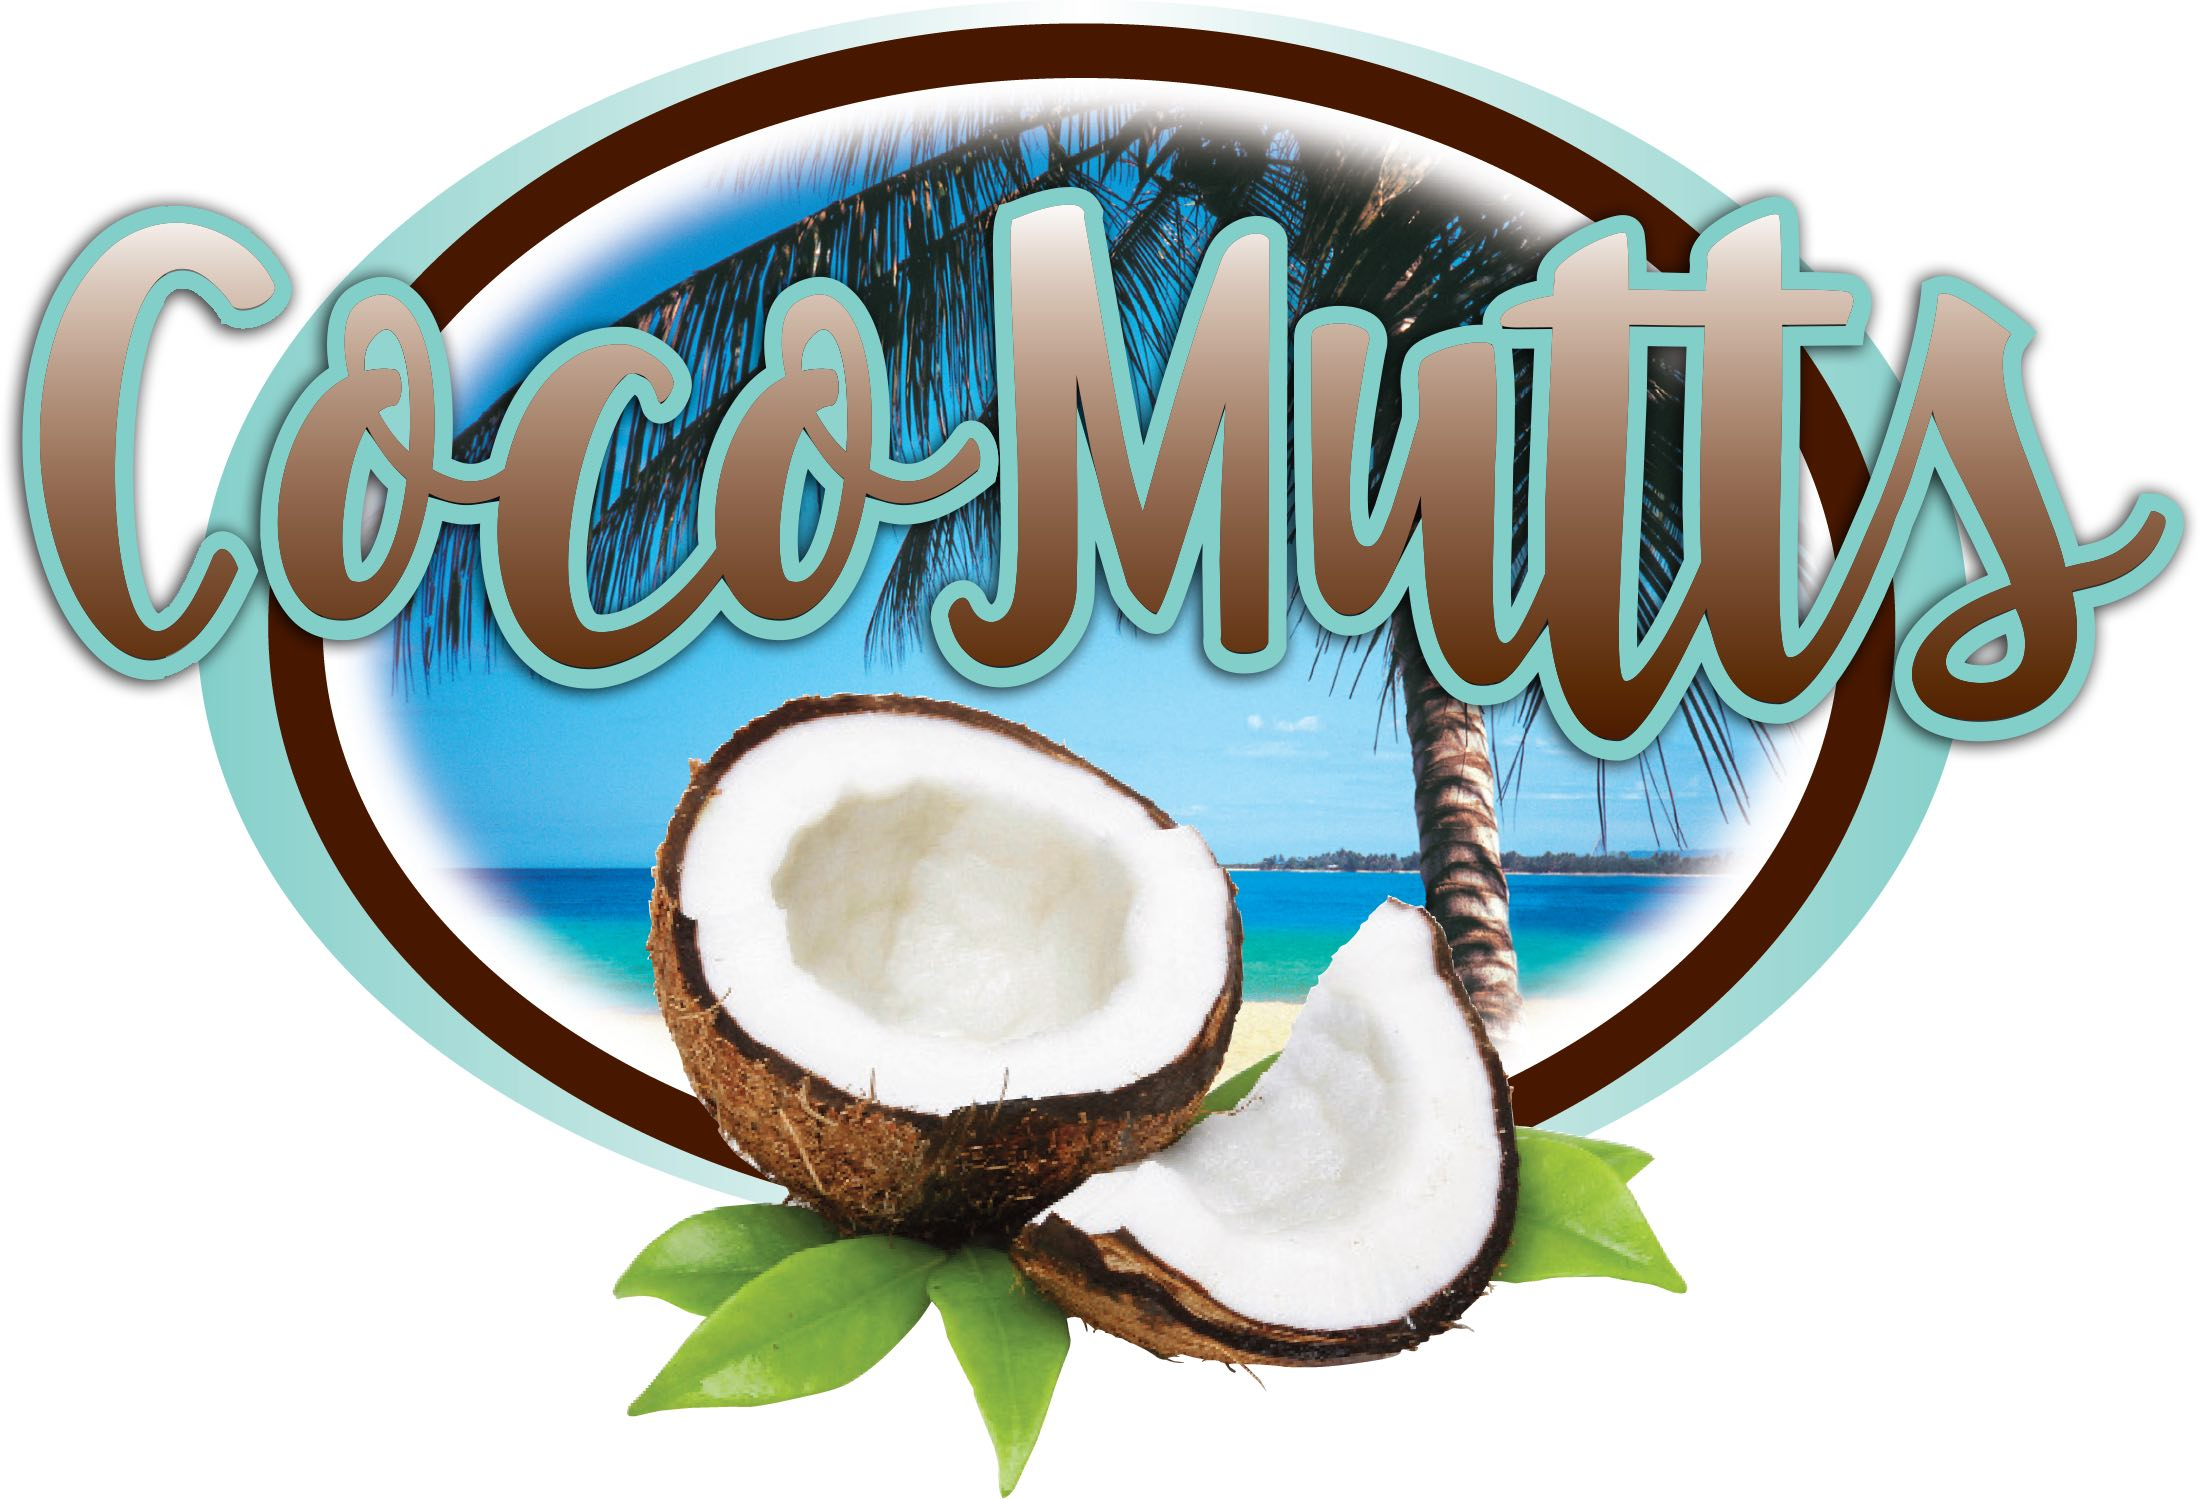 """Coconut Oil: The """"Good"""" Saturated Fat. For some of us, coconuts conjure up images of palm trees and tropical locales. For others, they take us back to mouth-watering memories of our mother's home-baked coconut cream pie – or even the sweet, gooey center of our favorite childhood candy bar!"""